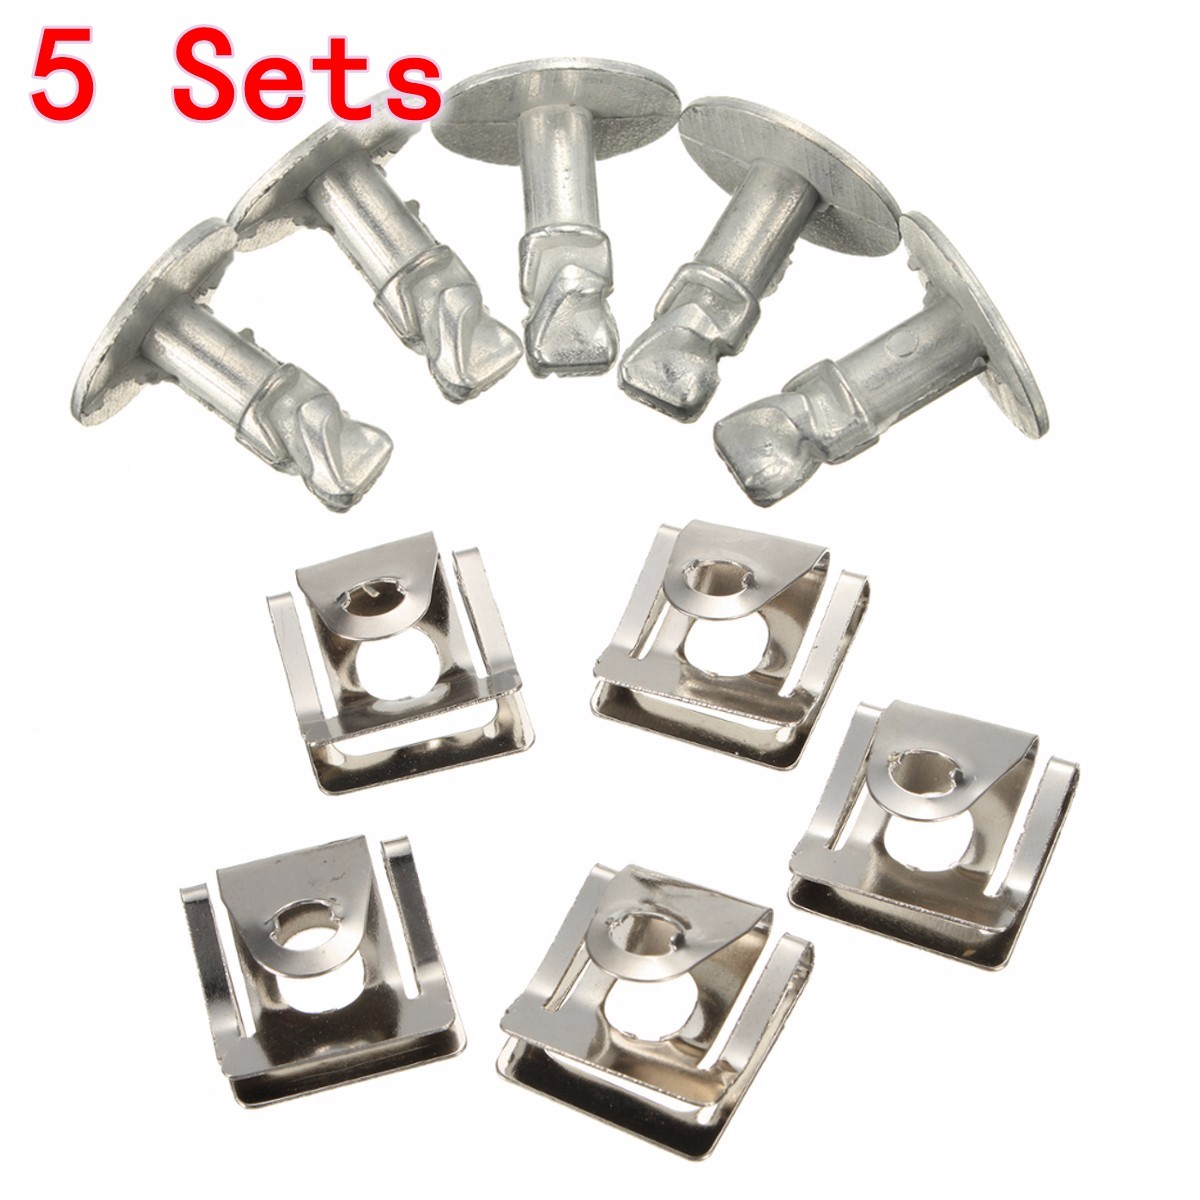 Brand New Under Engine Gearbox Cover Screws & Clips Set for Skoda Superb I /VW /Passat B5 /Audi A4 A6 Models(China (Mainland))